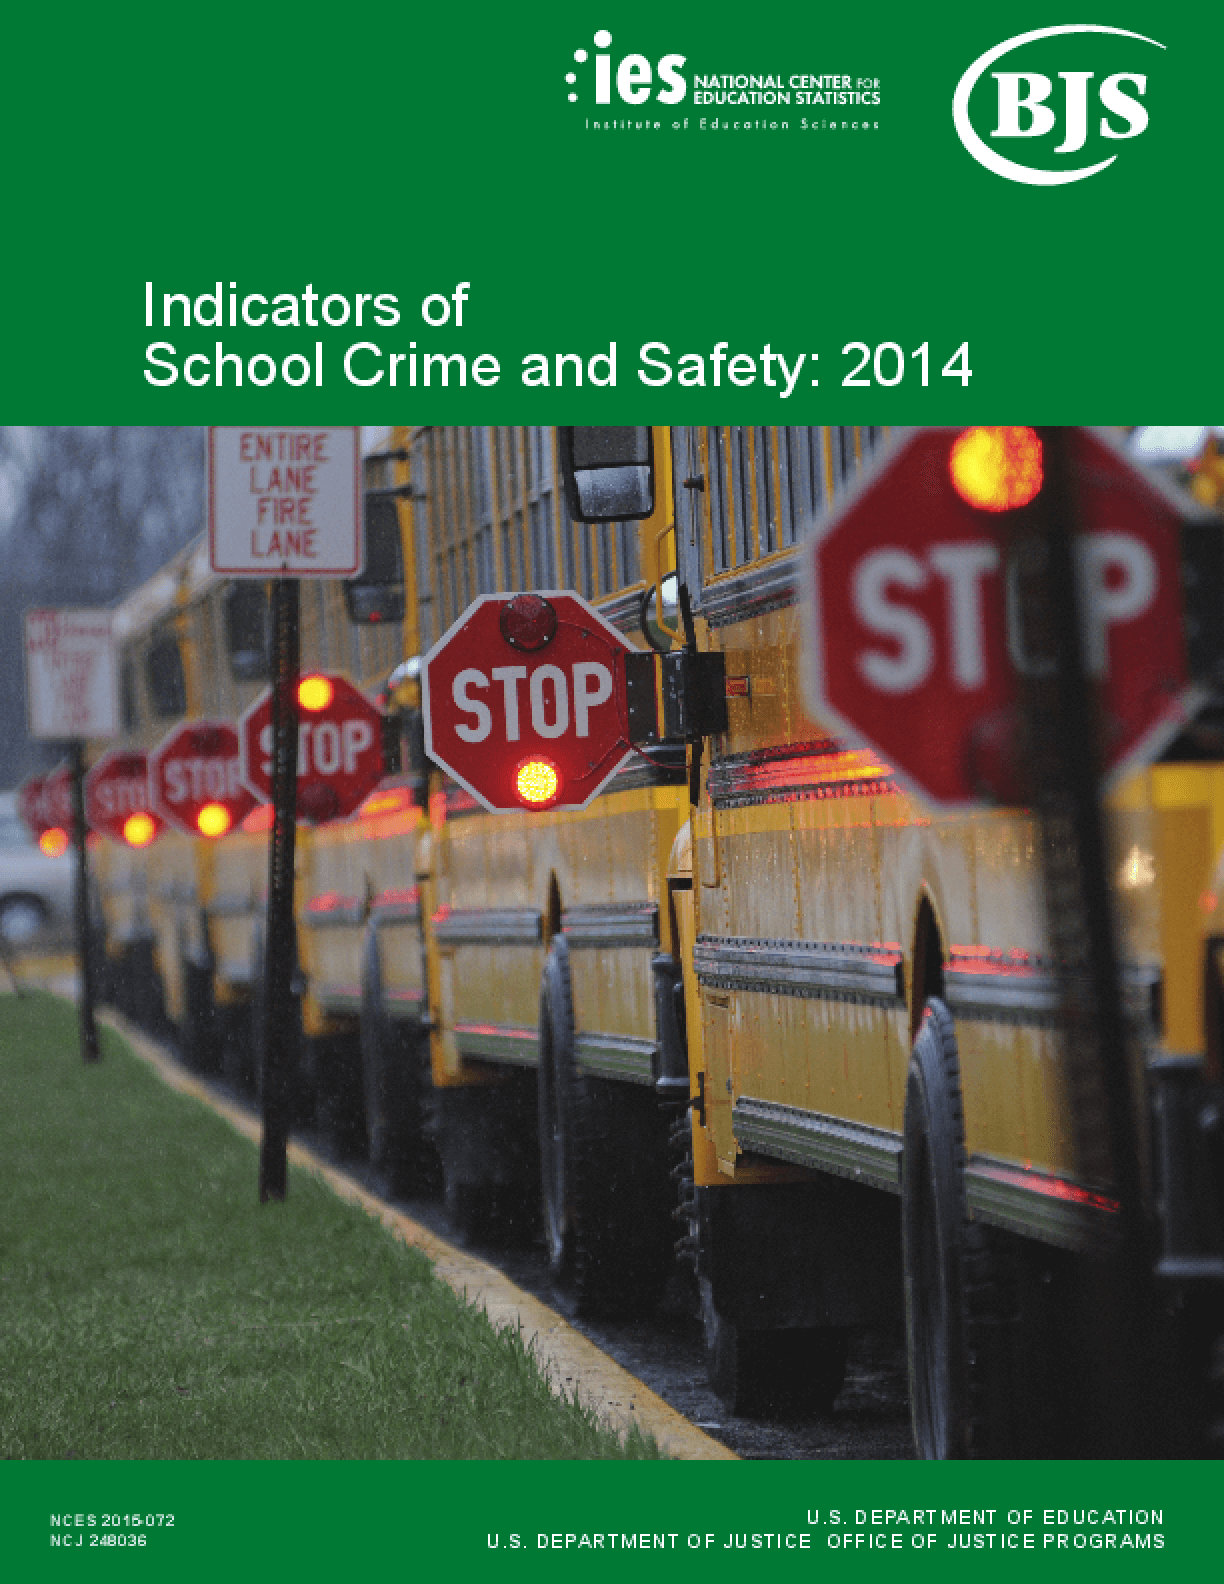 Indicators of School Crime and Safety: 2014